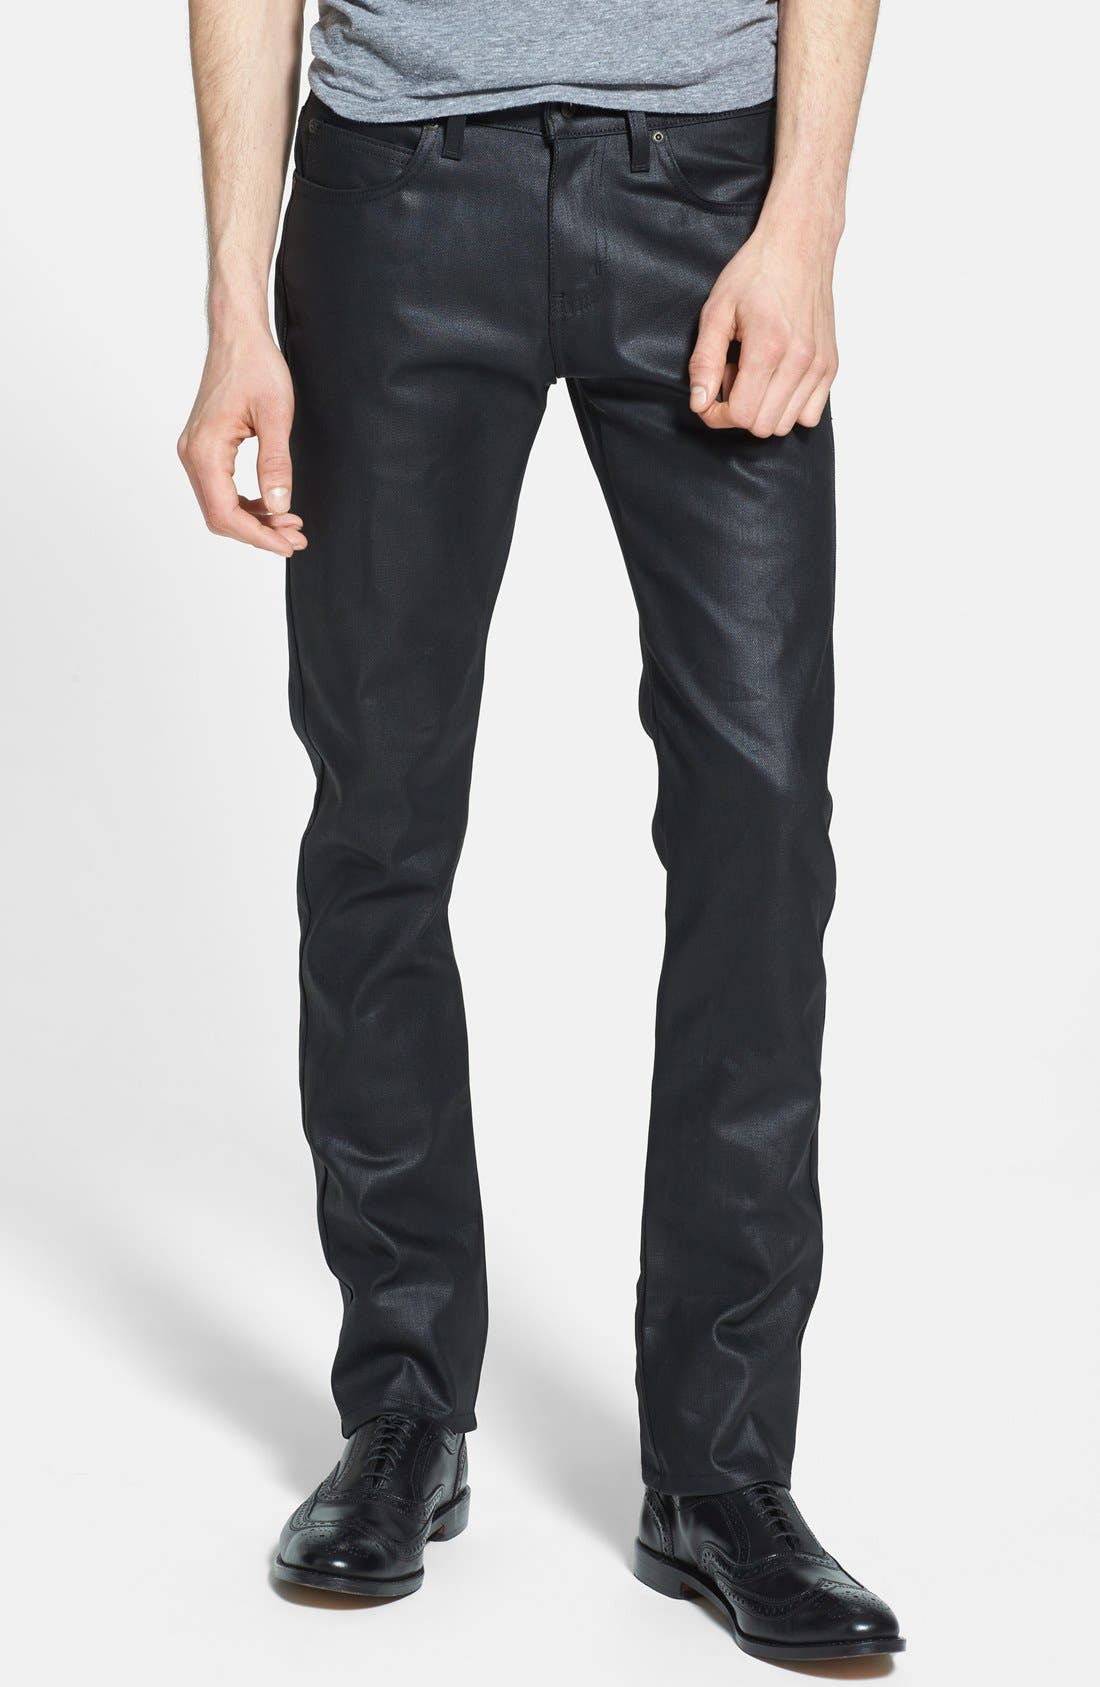 Main Image - Naked & Famous Denim 'Skinny Guy' Skinny Fit Jeans (Wax Coated Black Stretch)